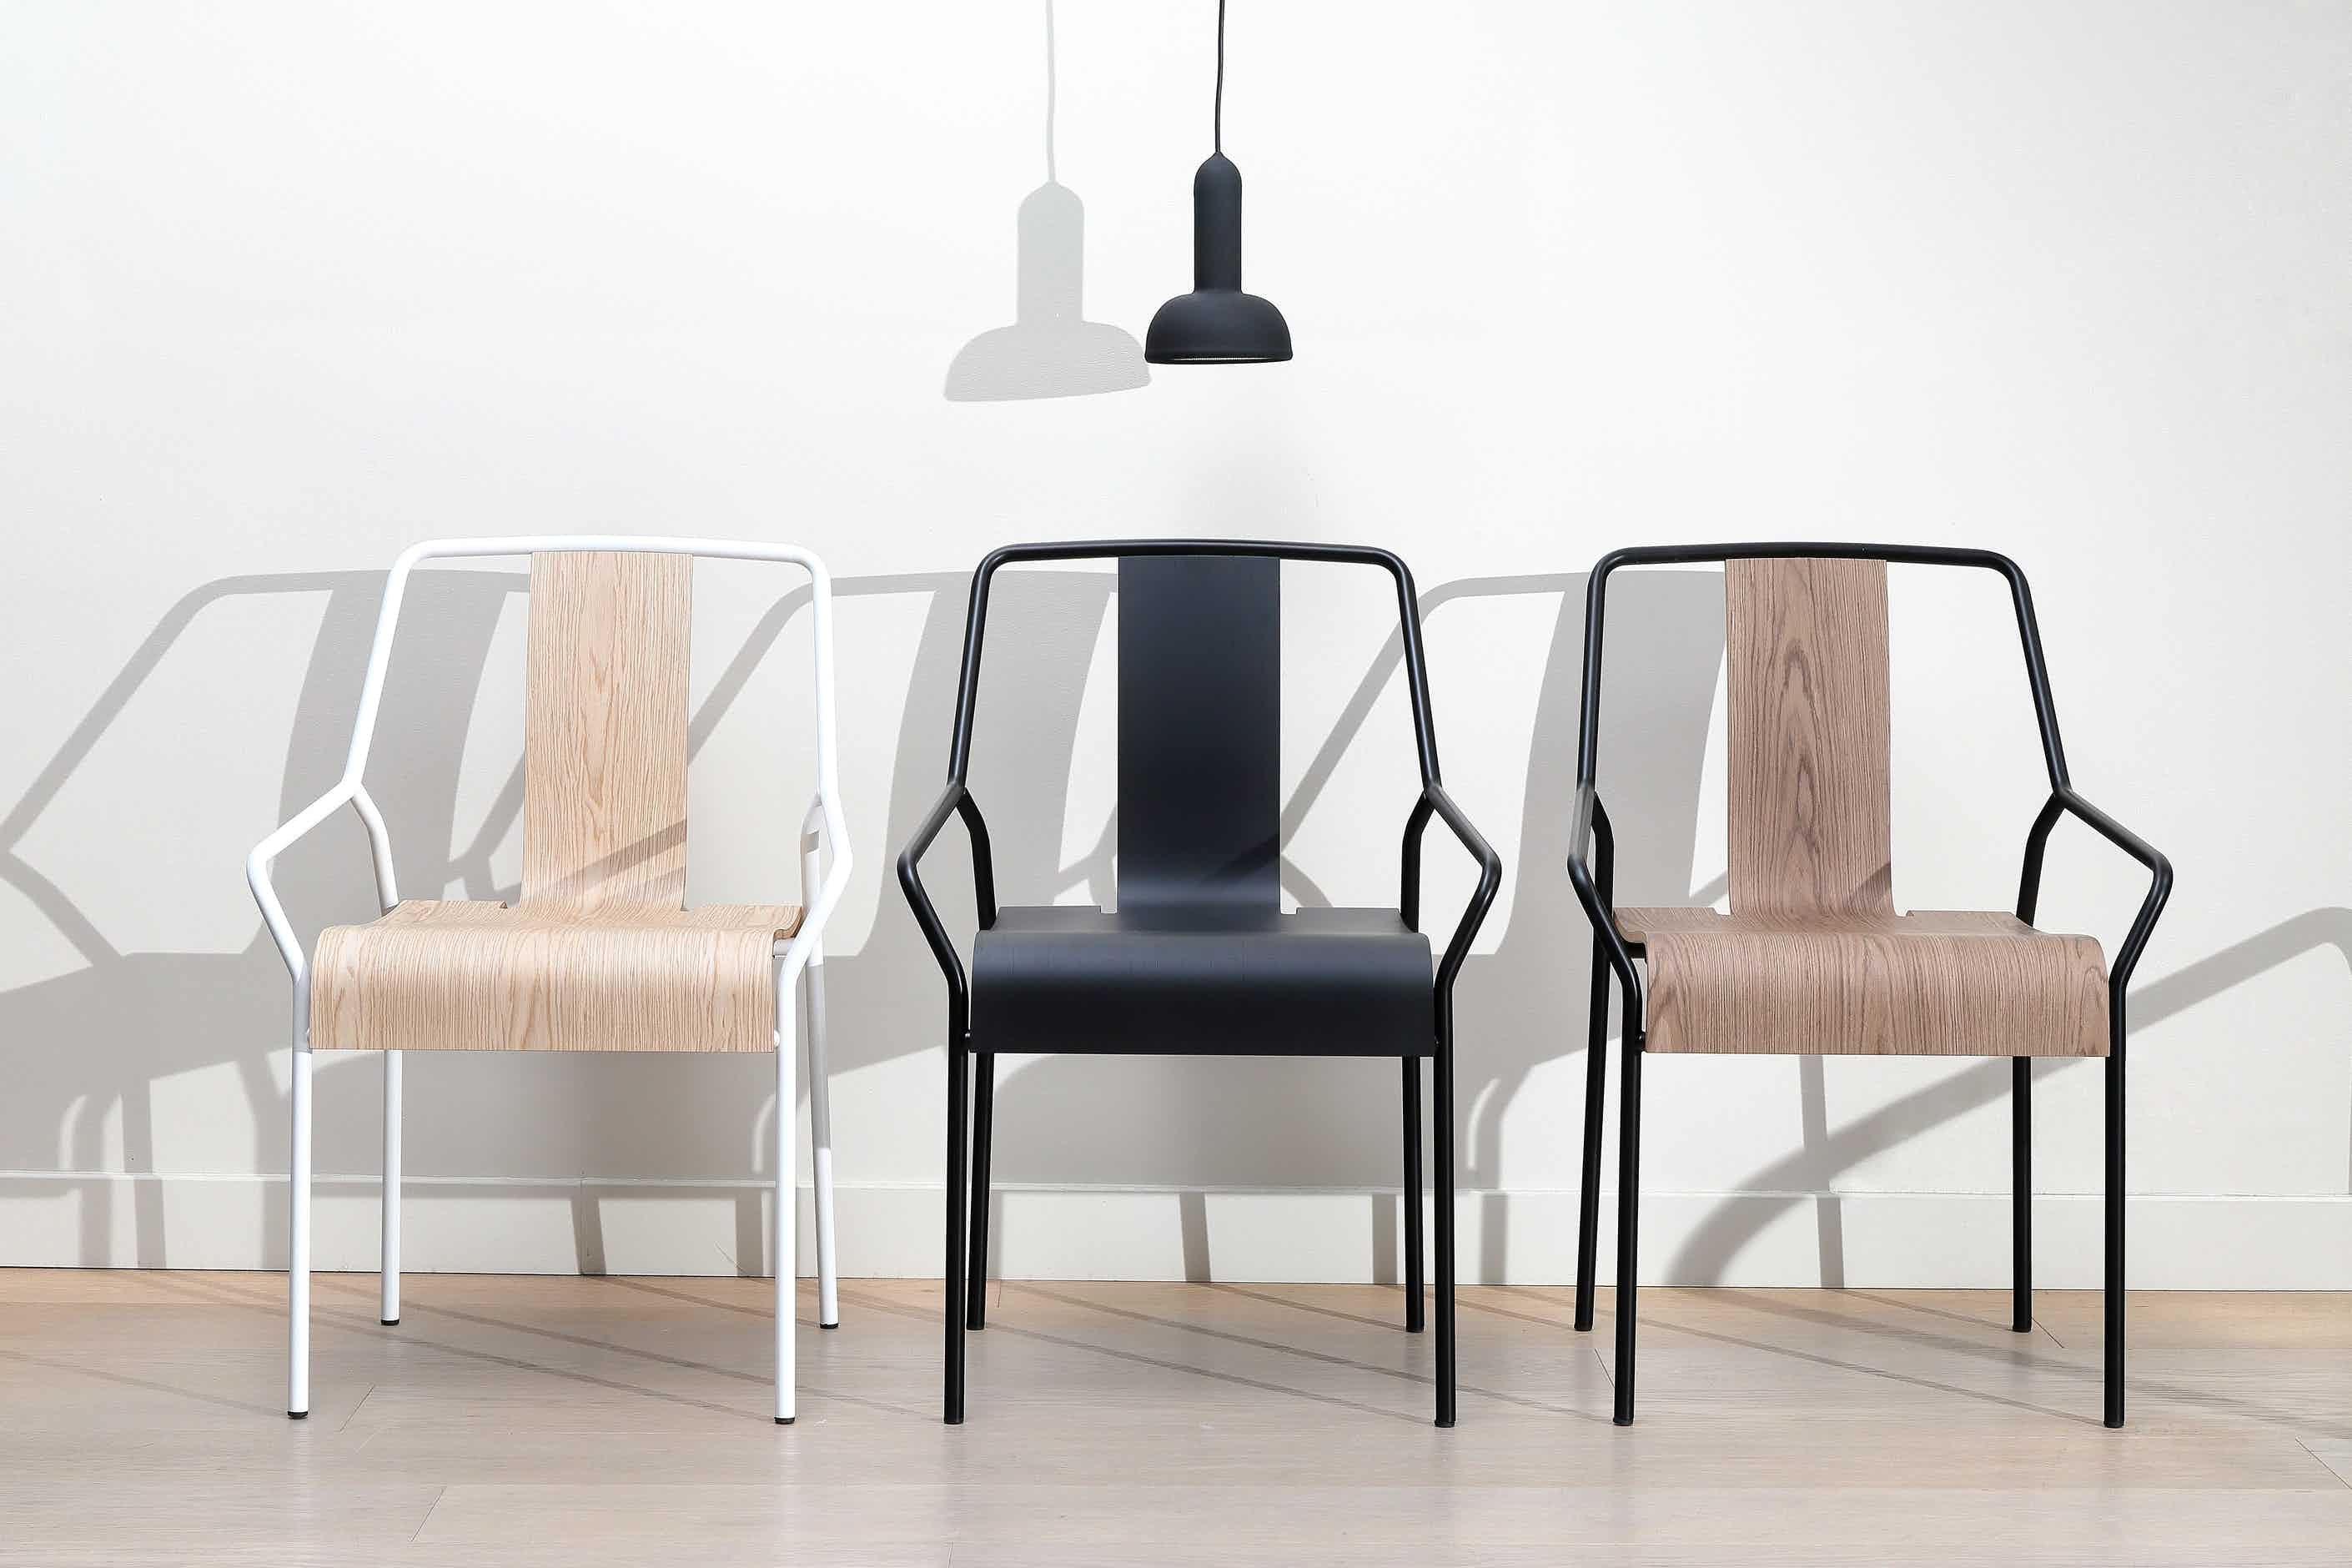 Coedition dao chair oak and black insitu 2 haute living